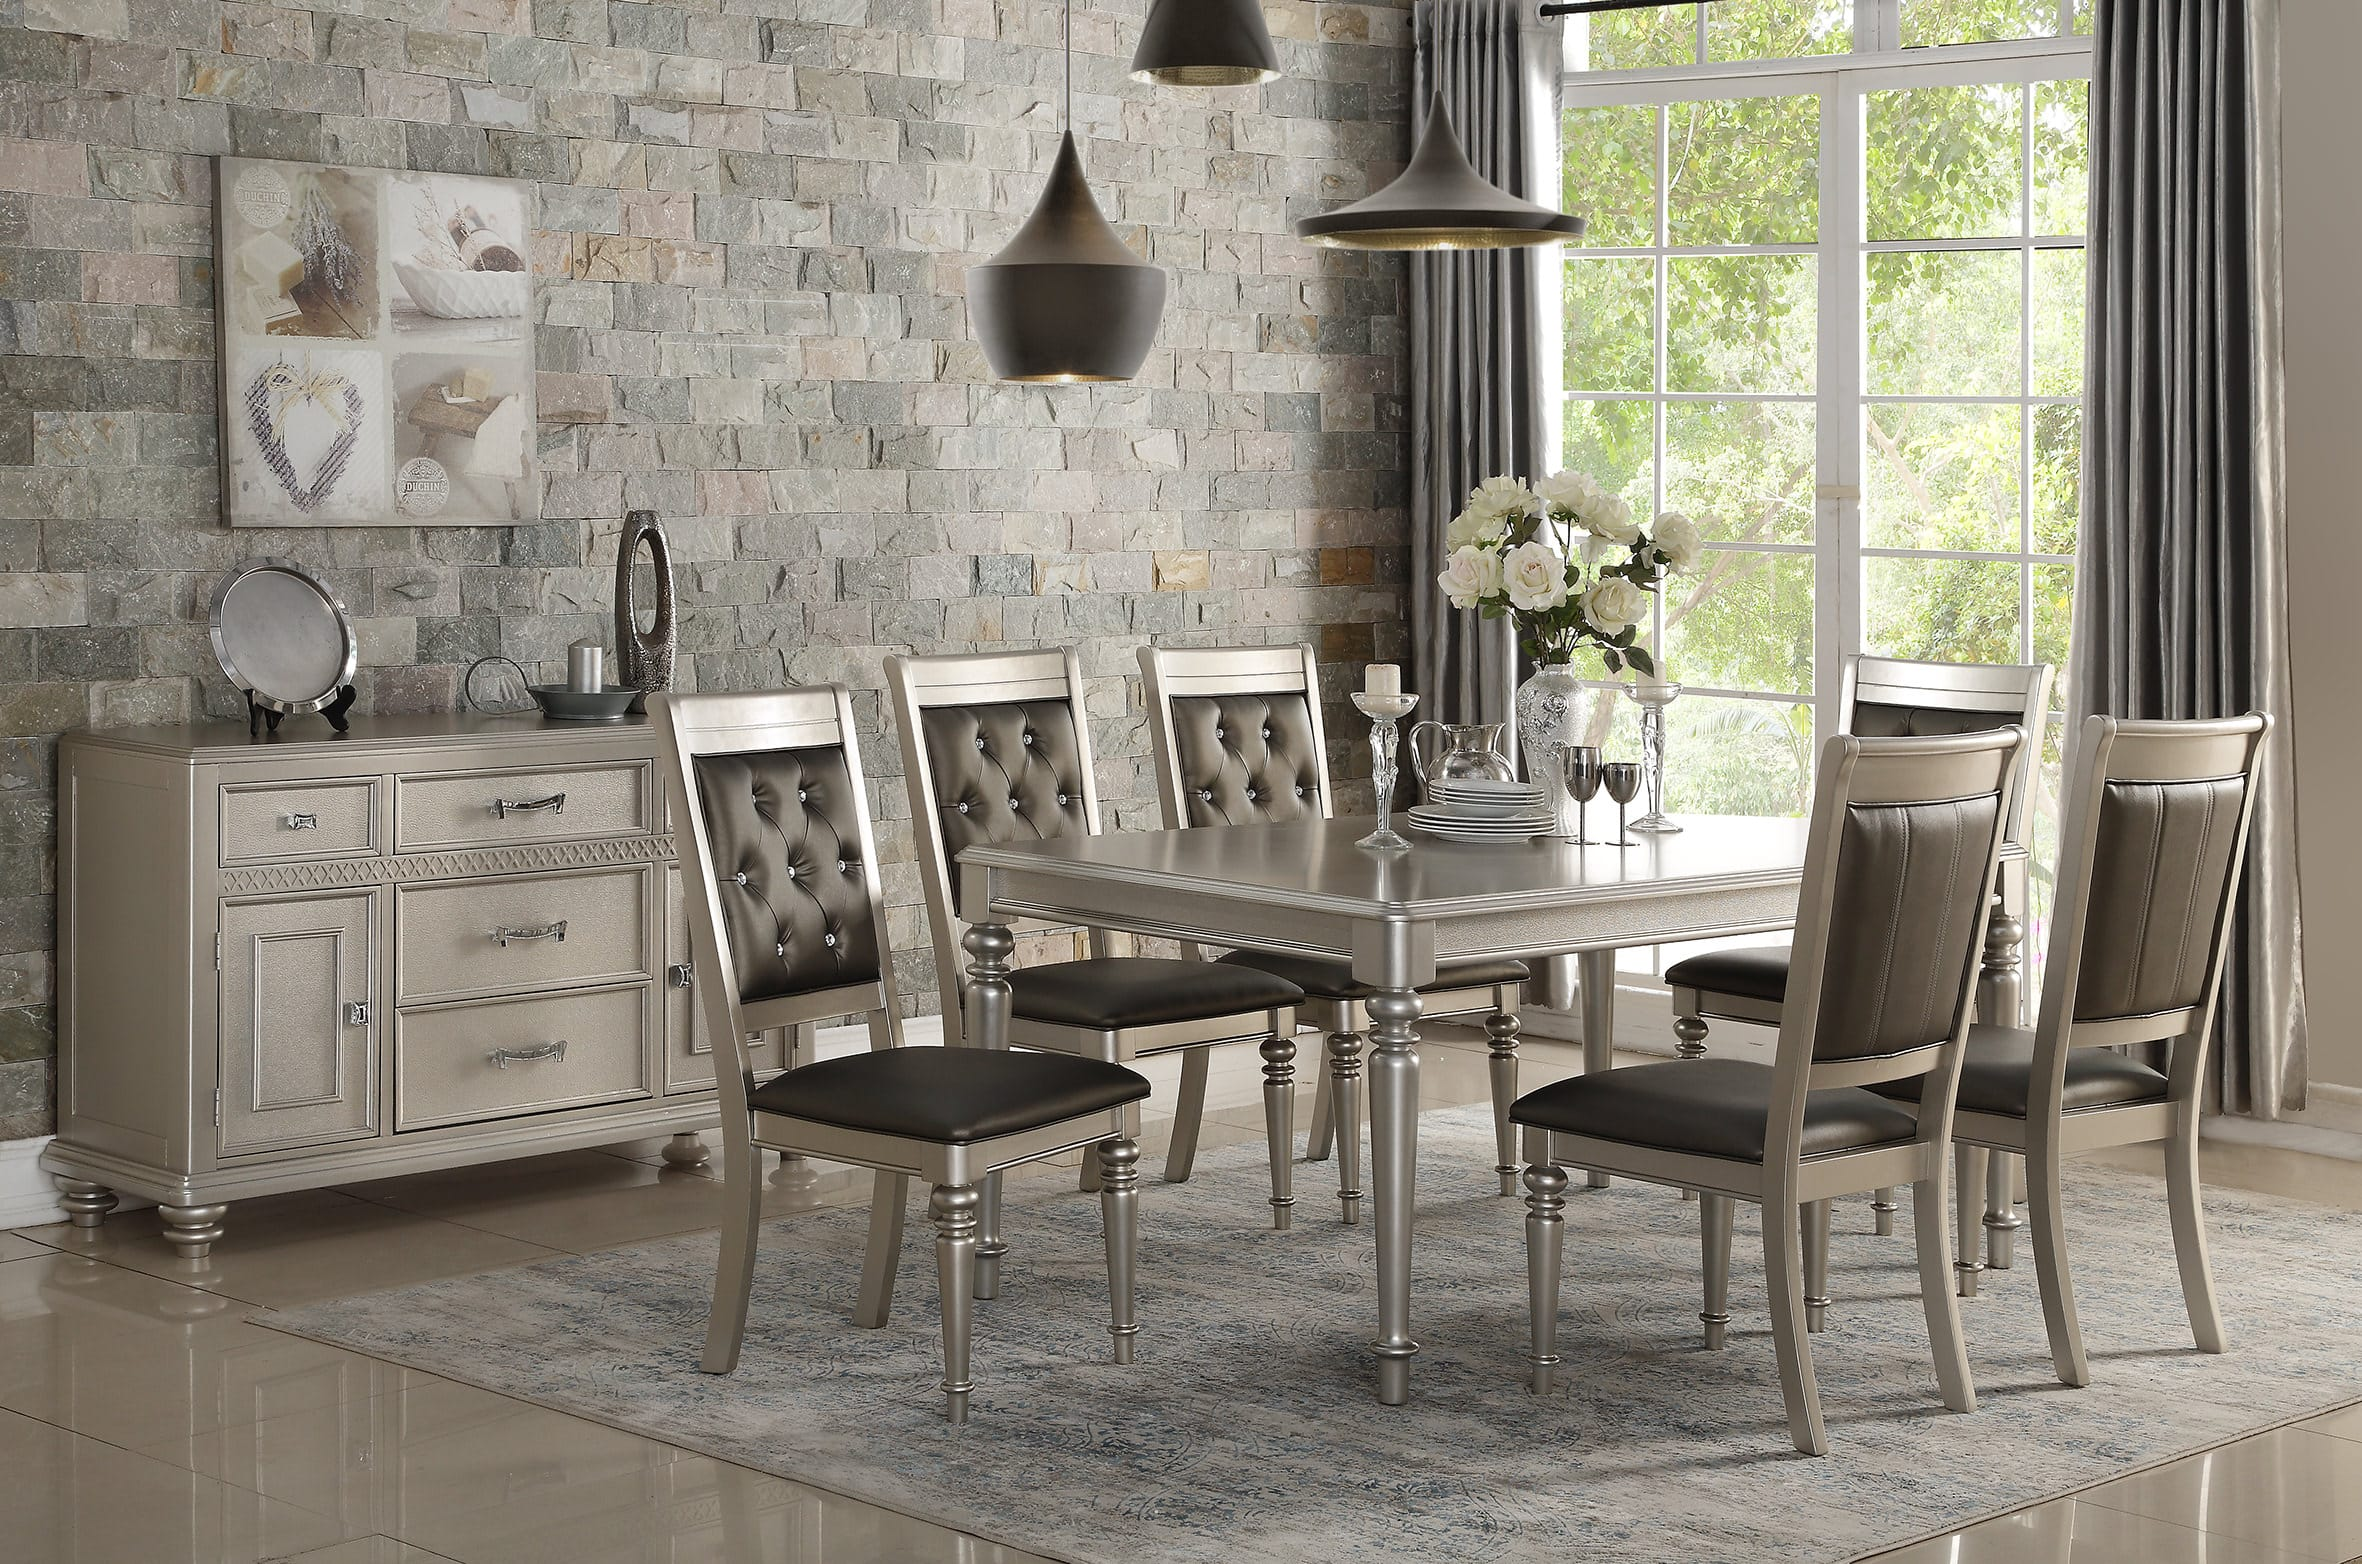 f2431 silver dining table by poundex - Silver Dining Table